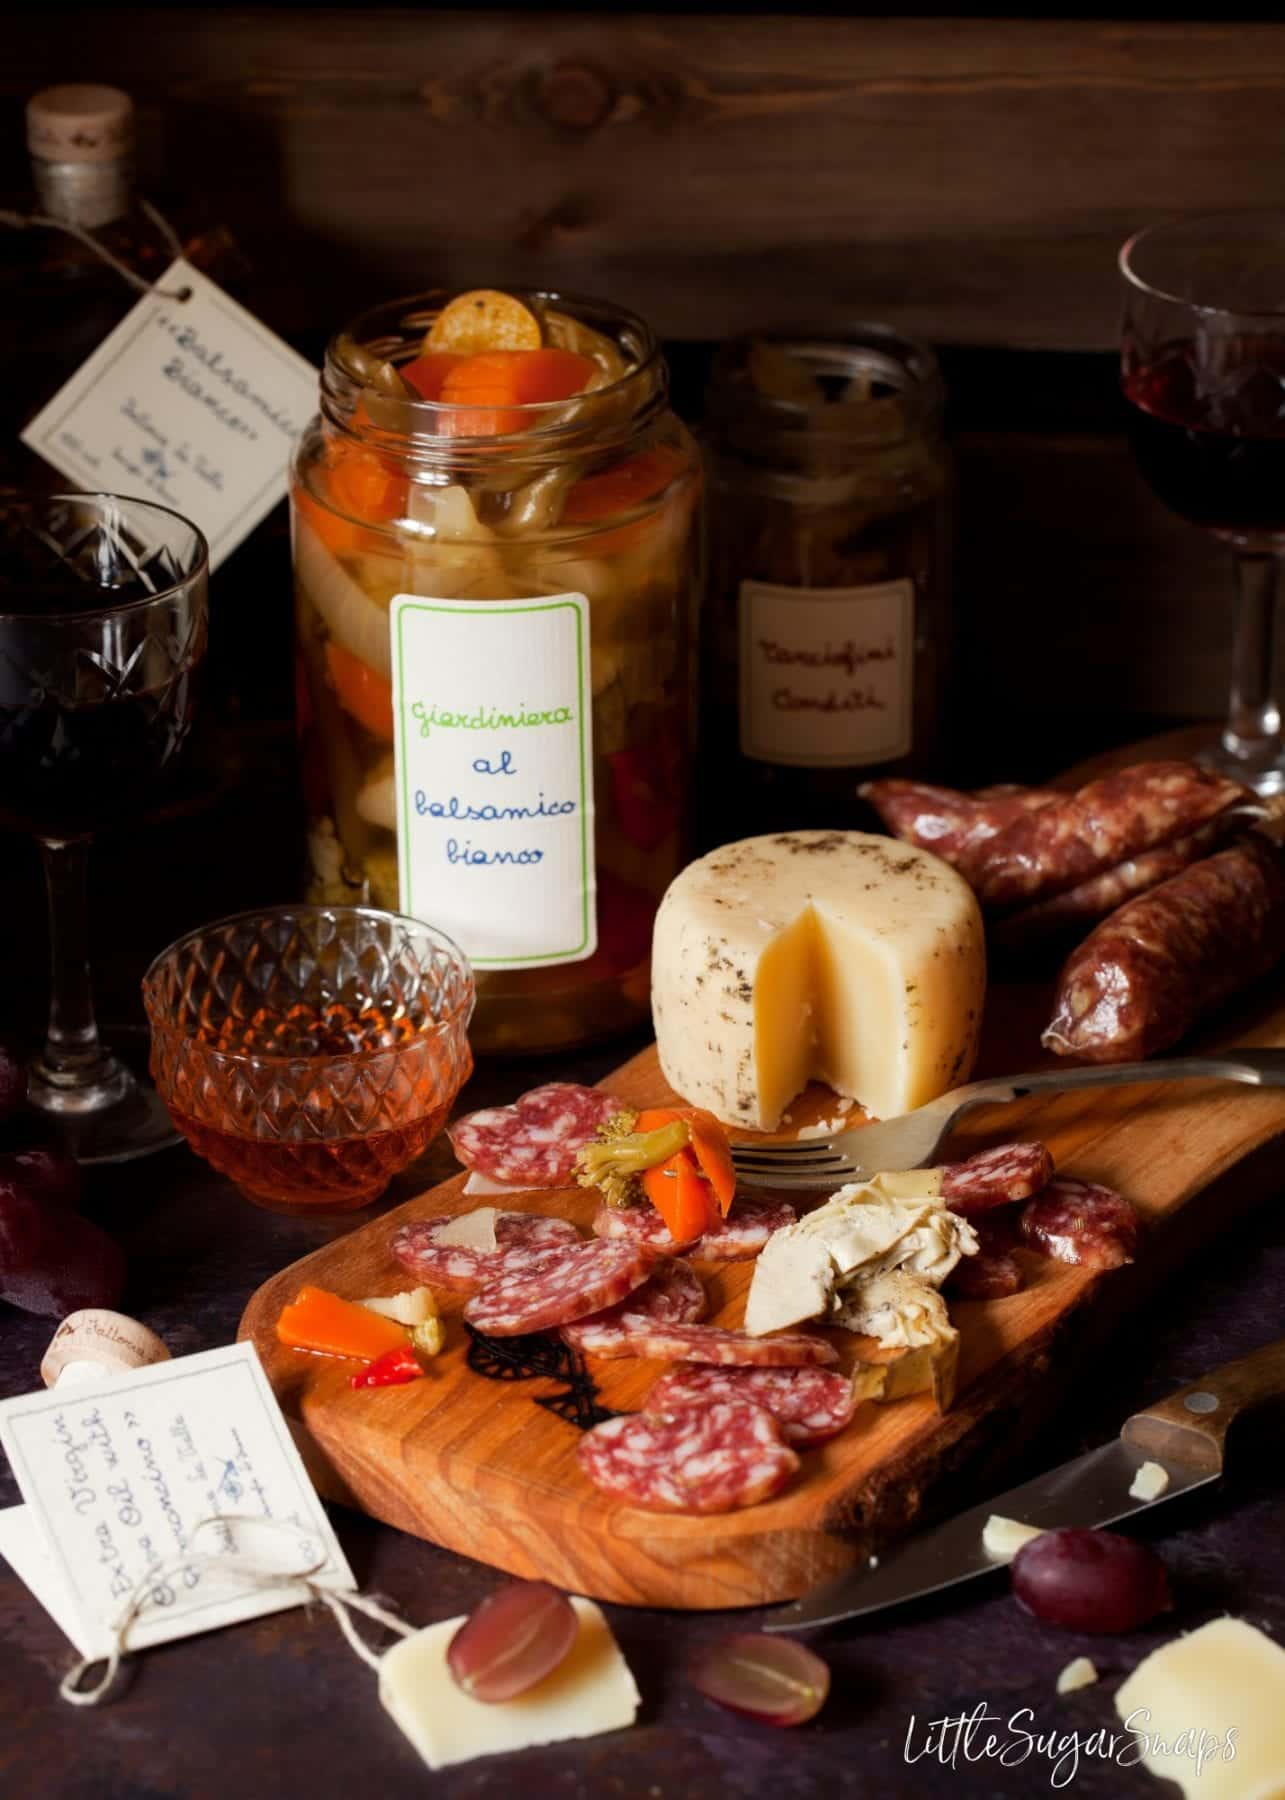 Fattoria La Vialla Products including pecorino cheese and fennel salami on a serving board with an open jar of picked vegetables